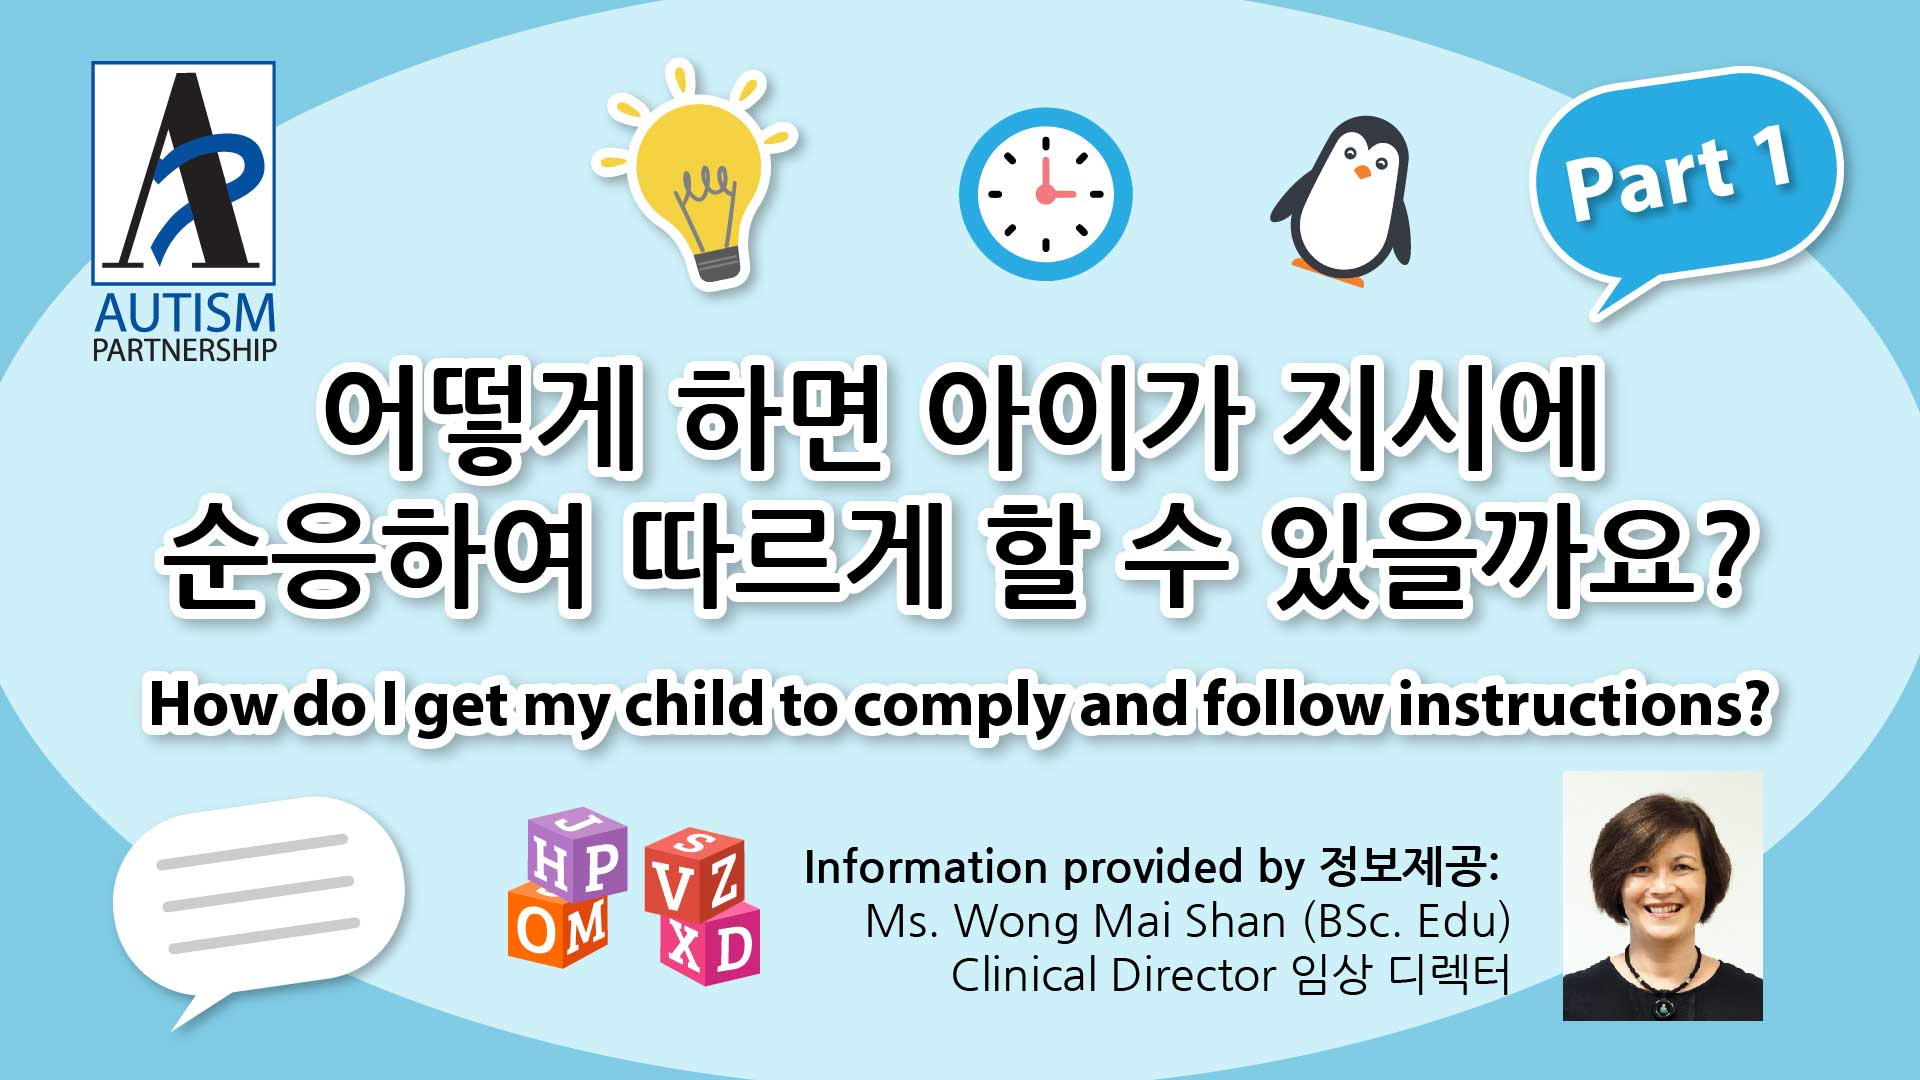 graphic_how-do-i-get-my-child-to-comply-and-follow-instructions-kr-01